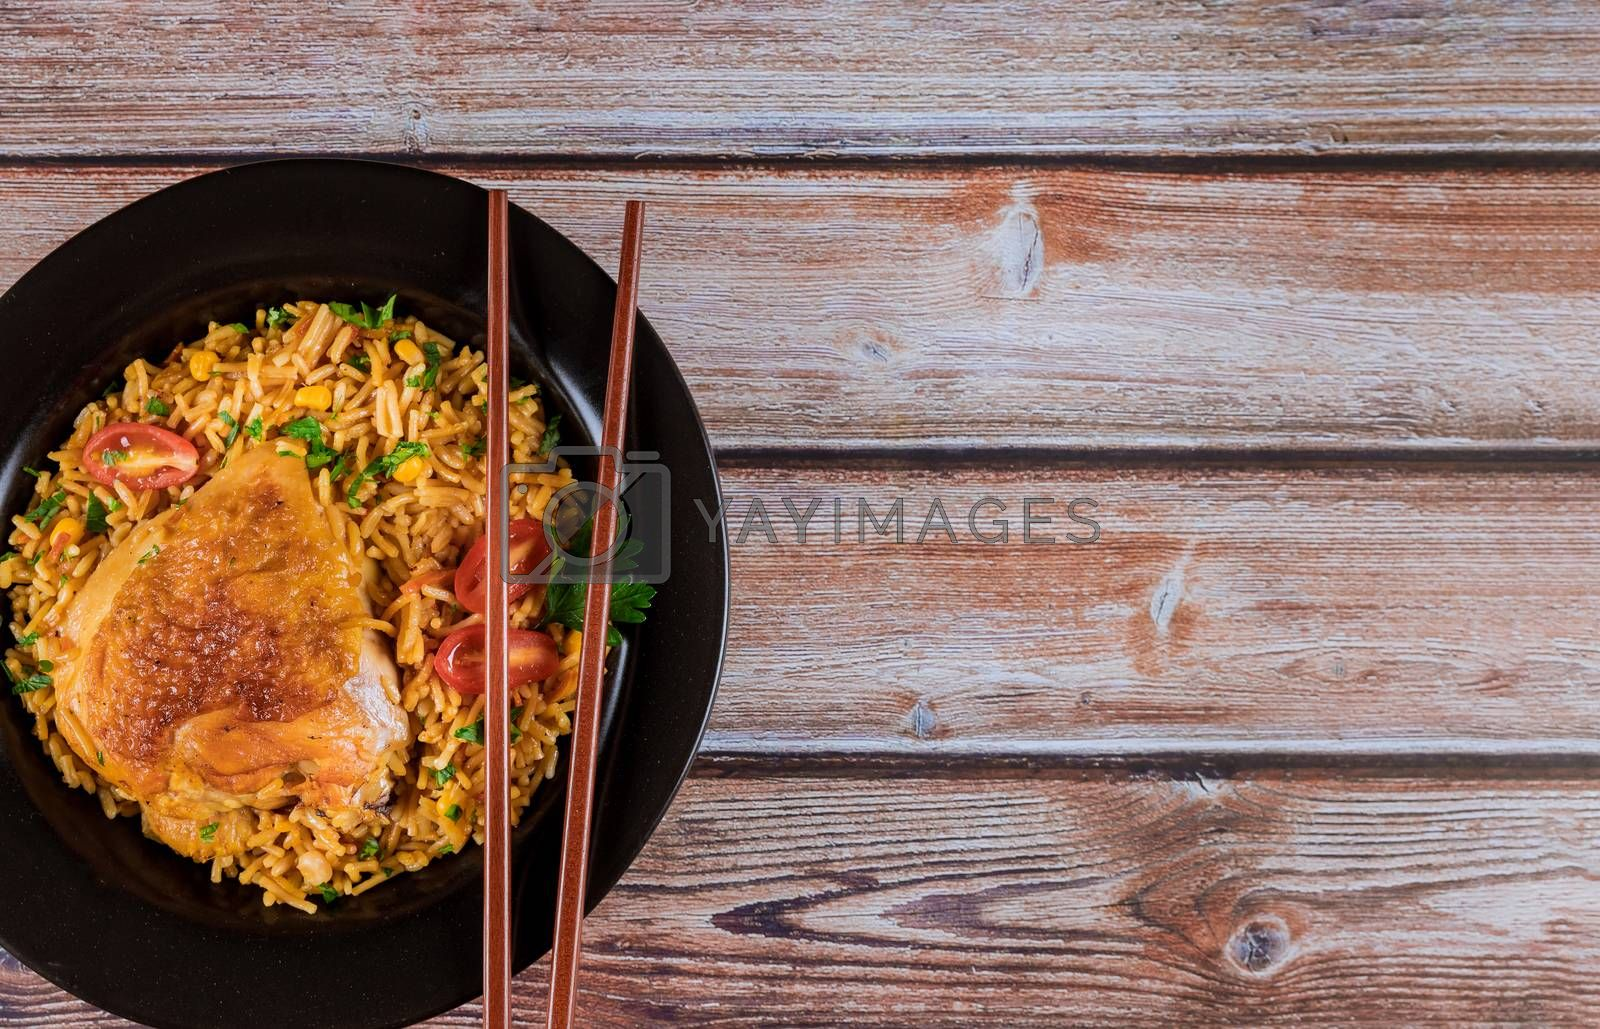 Homemade Chinese fried rice with chicken on a plate with chopsticks into the dish Asian food style